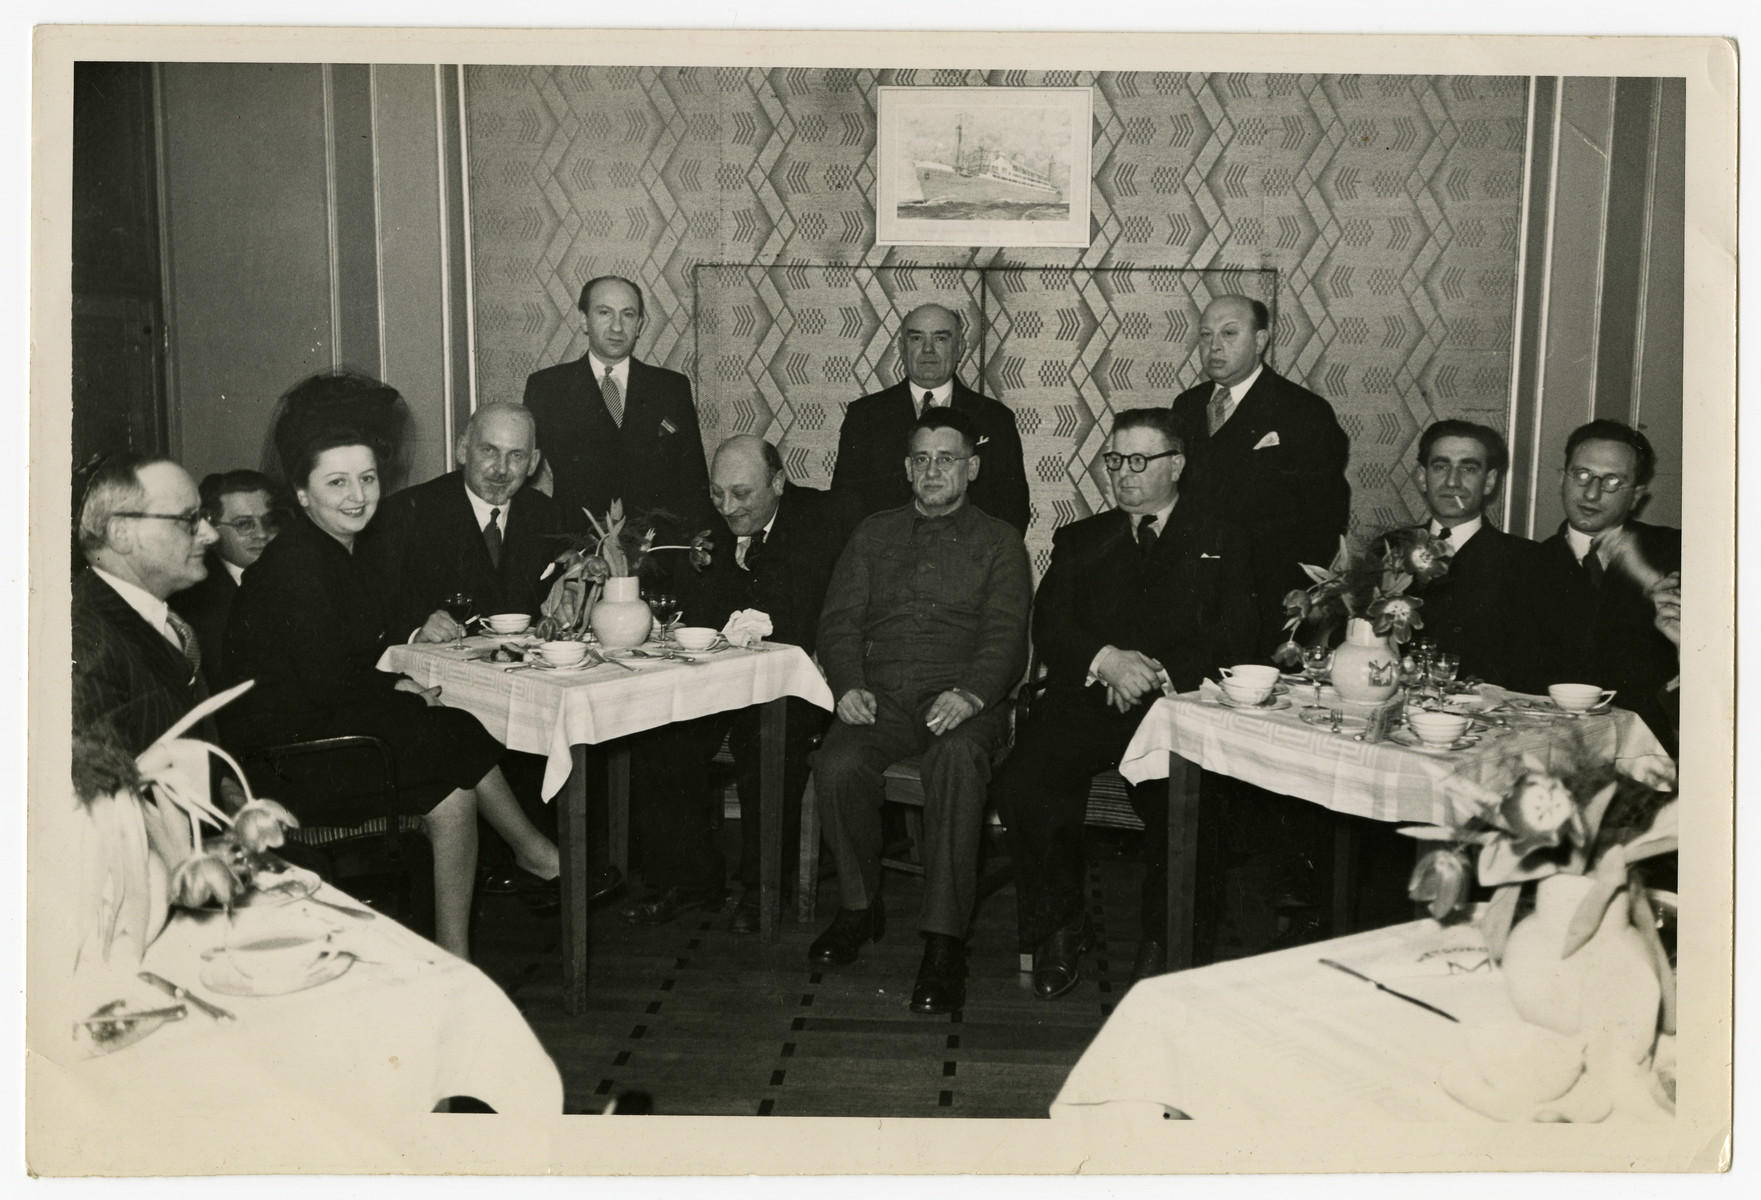 Zionist meeting of a group of Belgian Jews.  [It is unclear if this is wartime or postwar.]  Fela Perelman is third from left, Chaim Perelman is at the far right, and Abush Werber is next to Chaim Perelman.